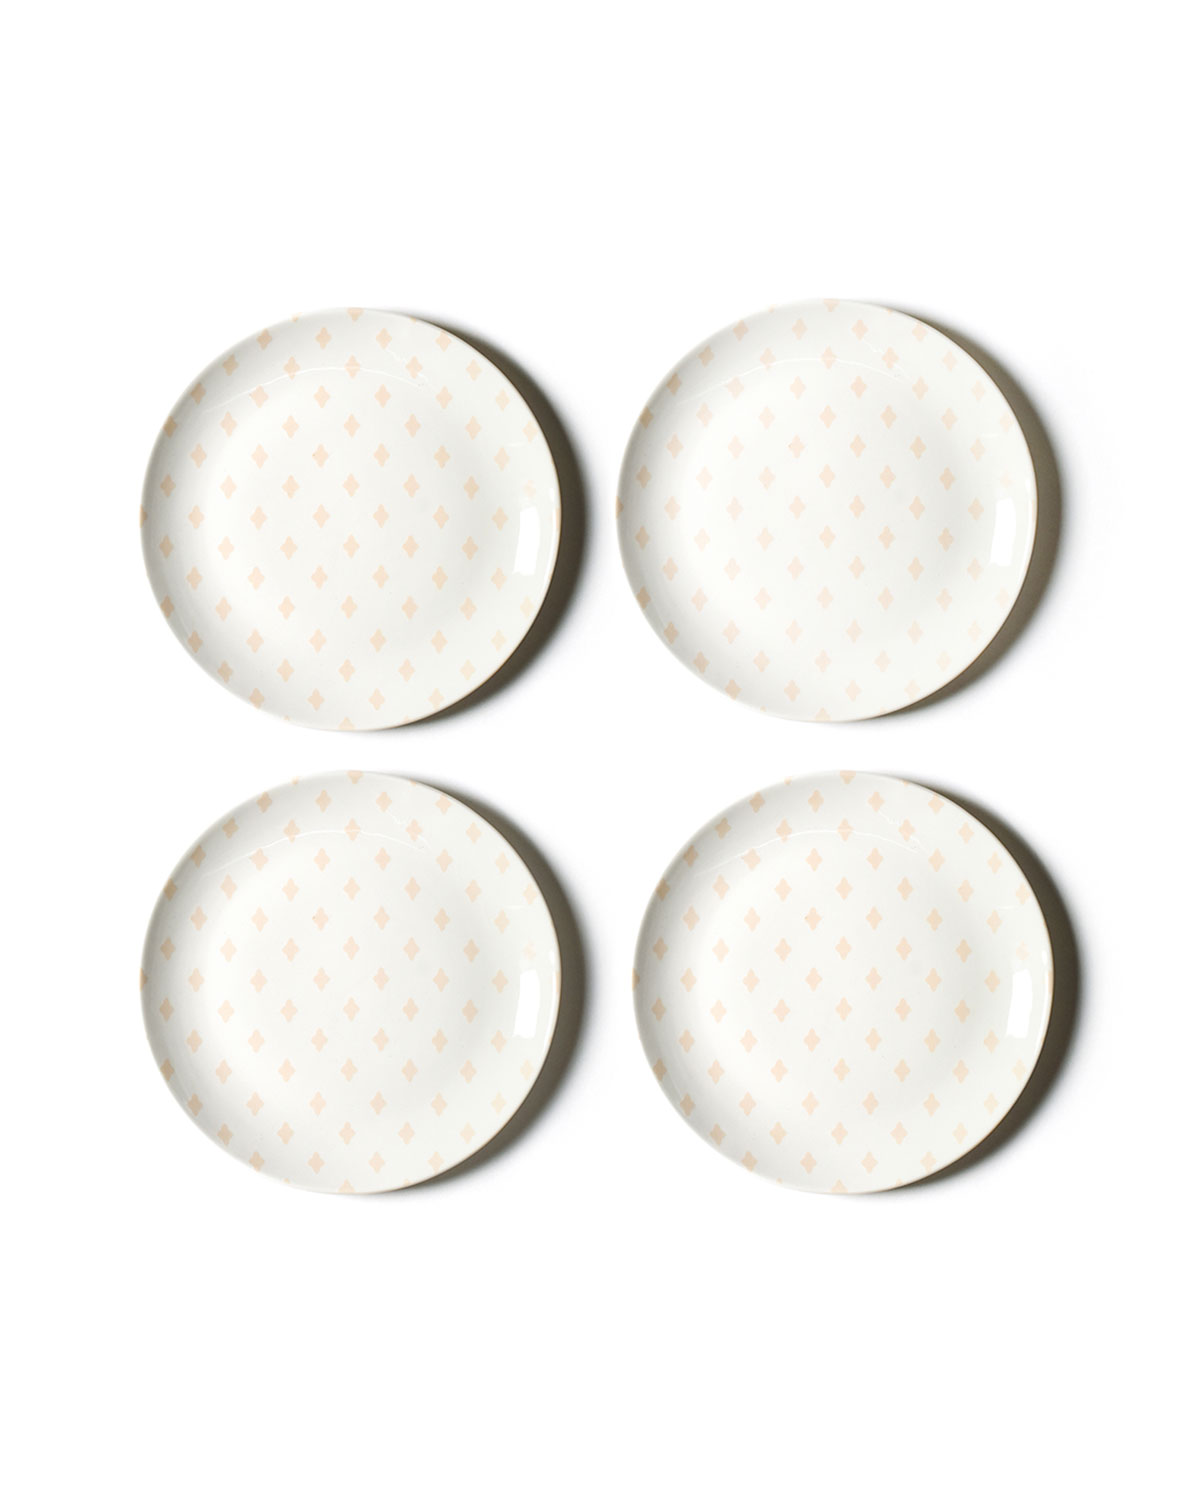 Coton Colors Quatrefoil Salad Plates, Set of 4